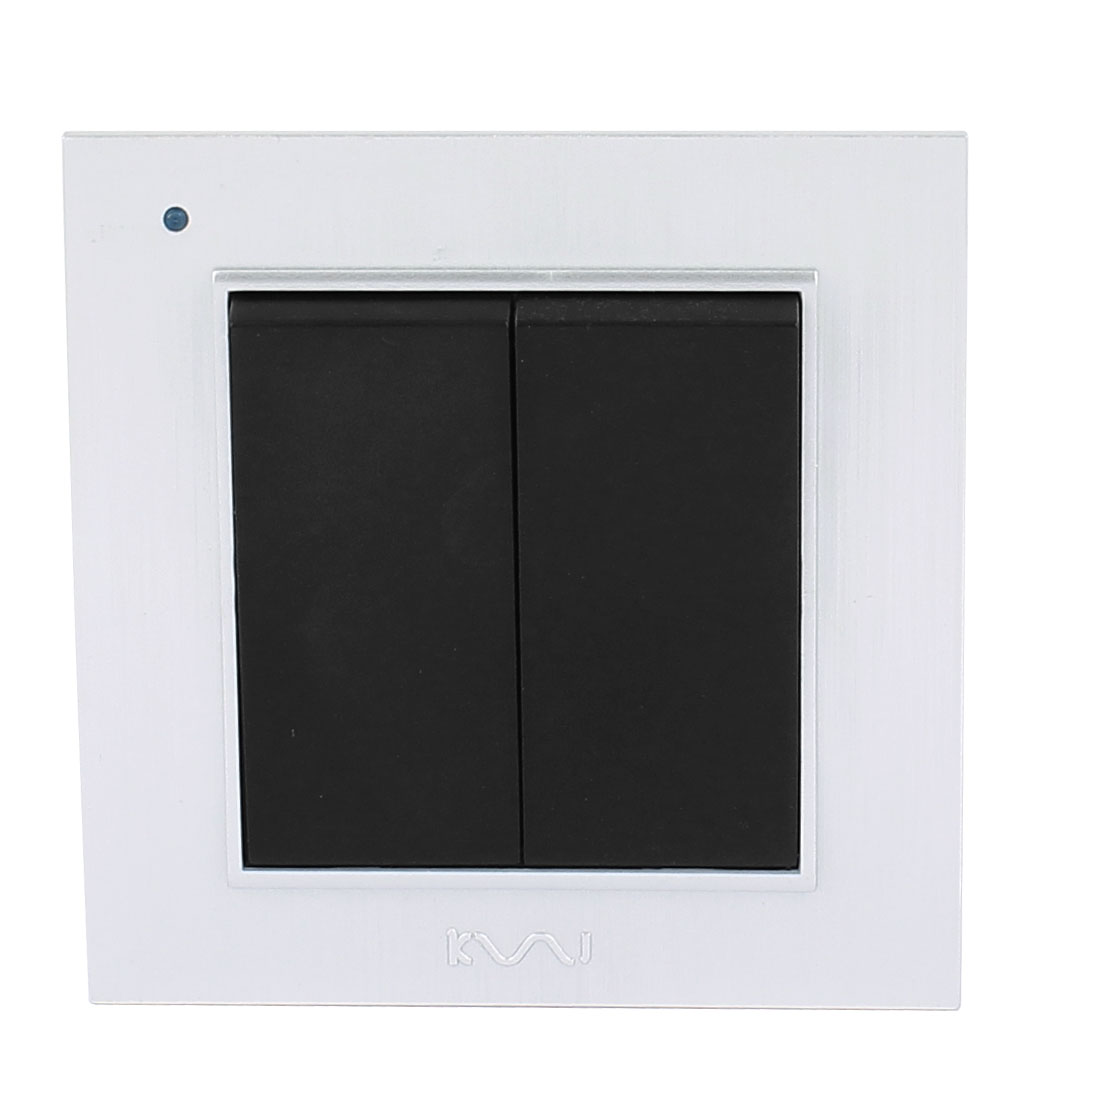 AC 250V 10A 2 Gang 1 way On/Off Wall Mounting Flame Retardant PC Switch Silver Tone